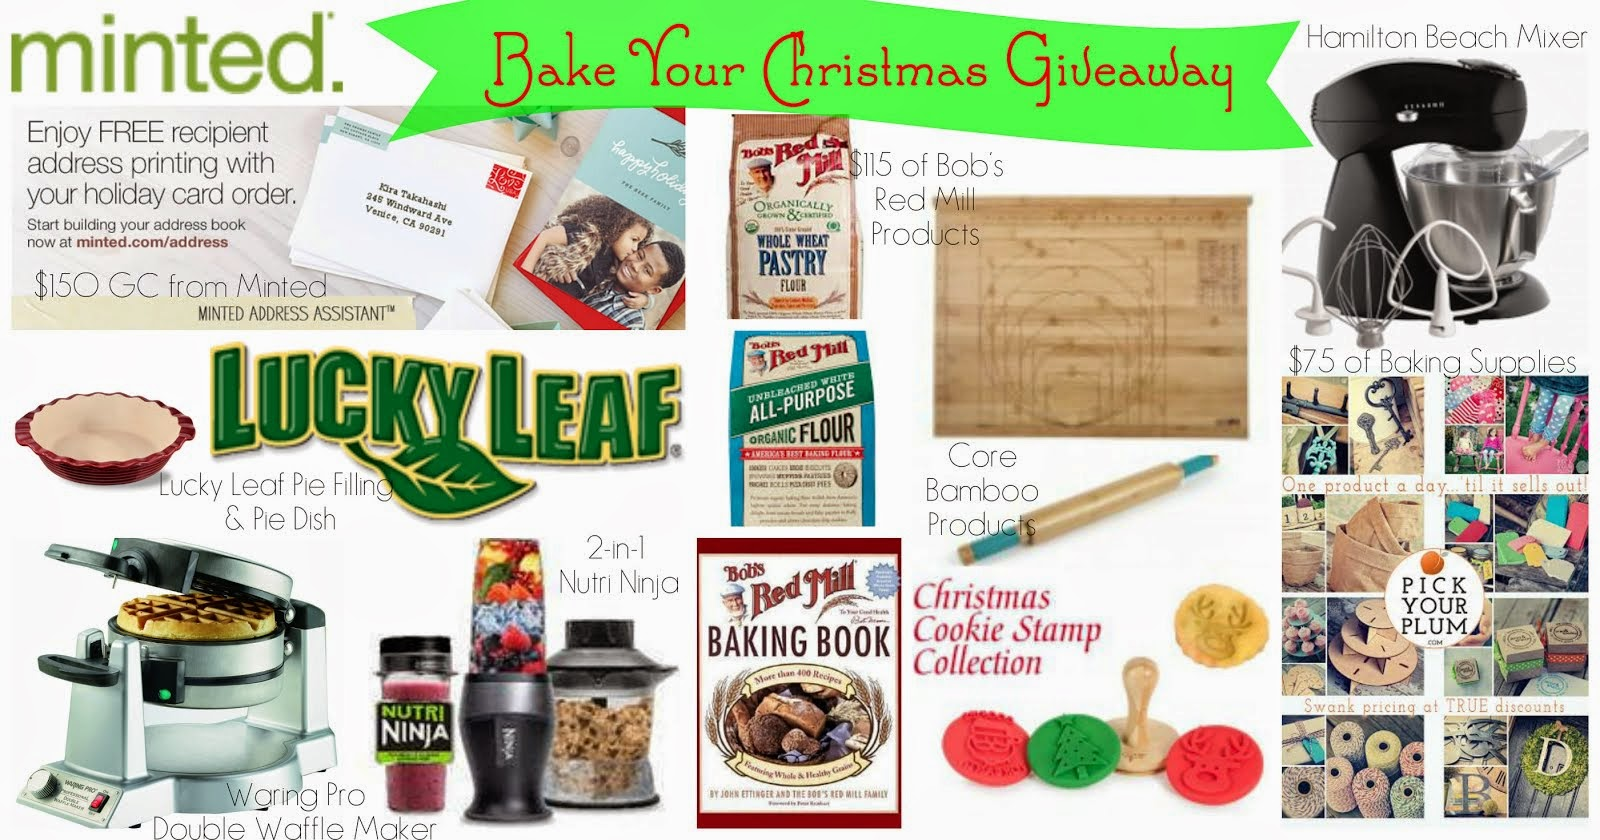 Enter to win the Bake Your Holiday Gifts Giveaway!